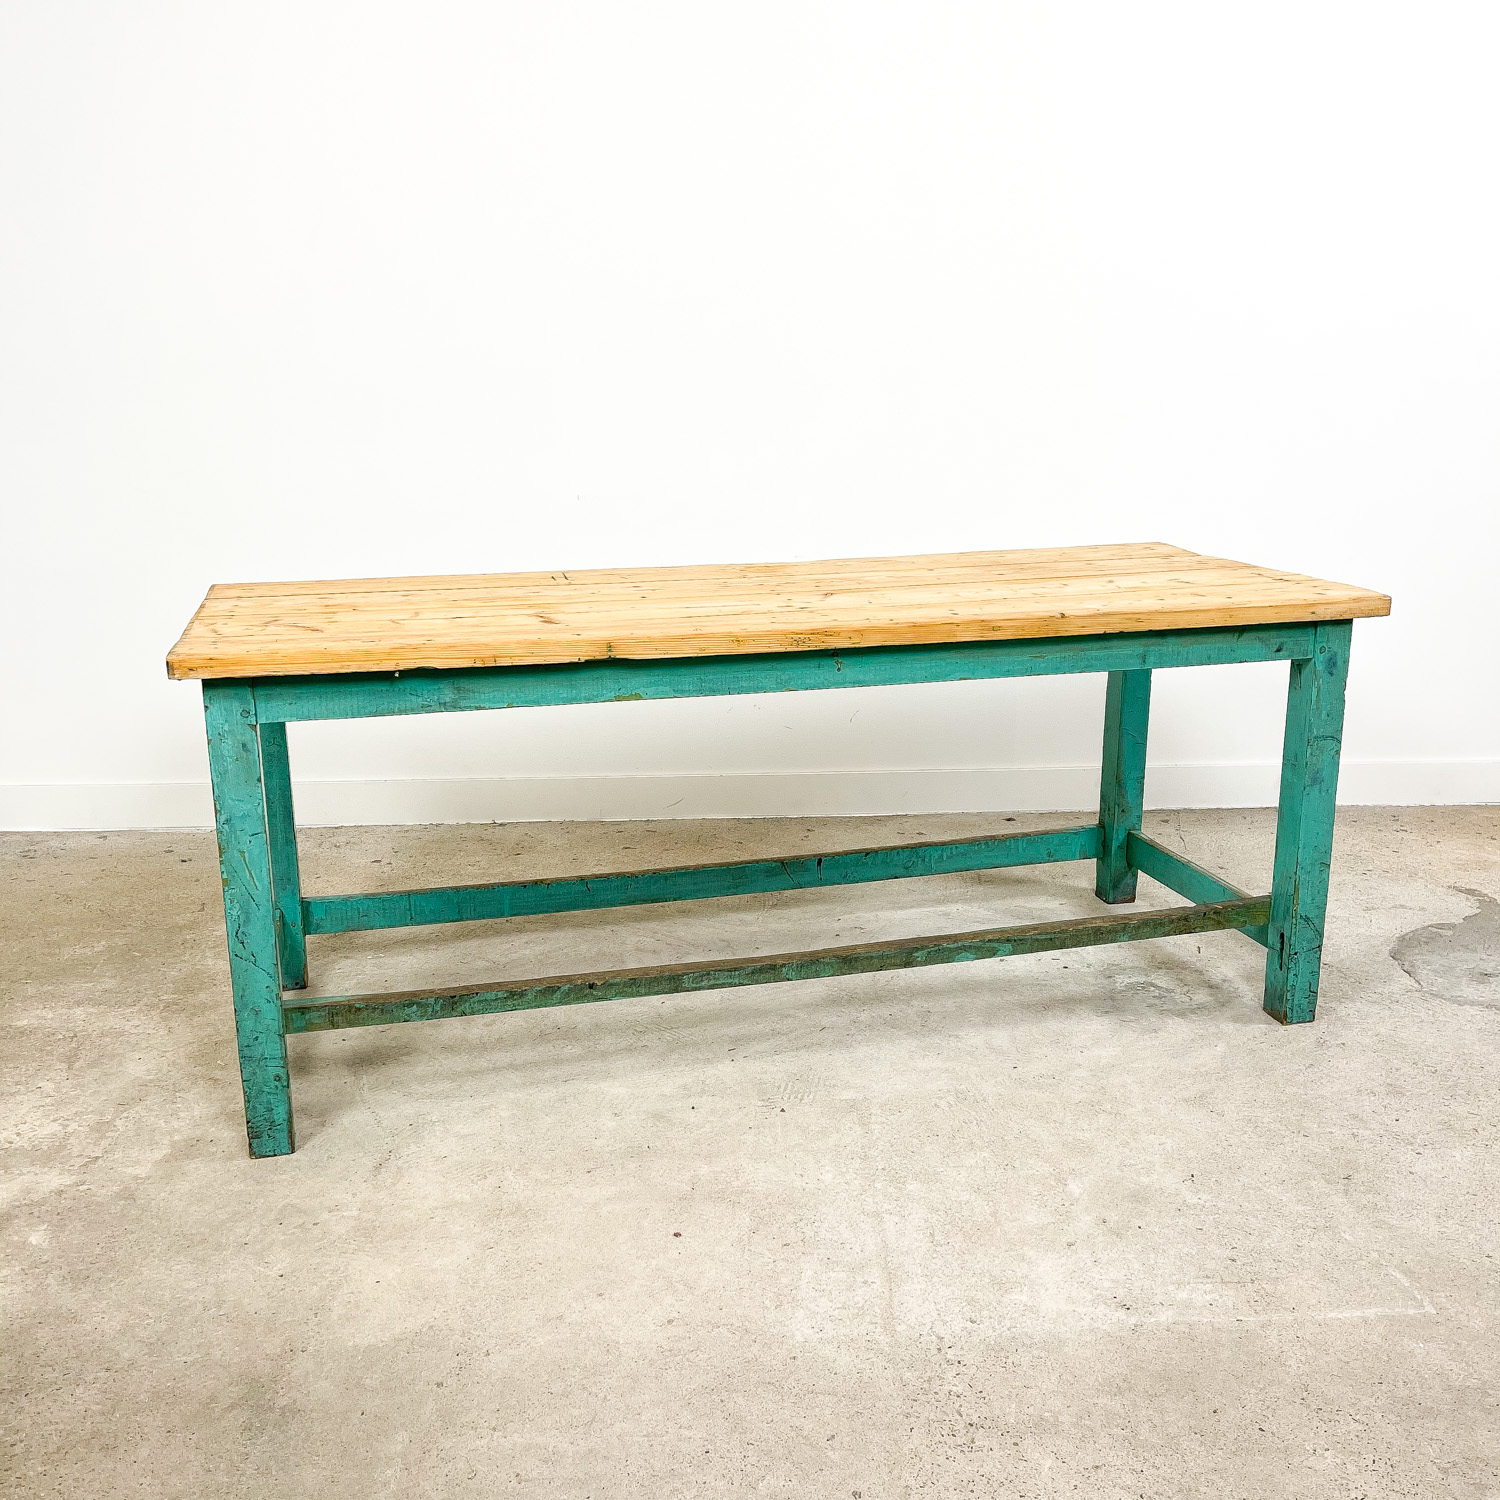 vintage industrial painted blue green wooden work table